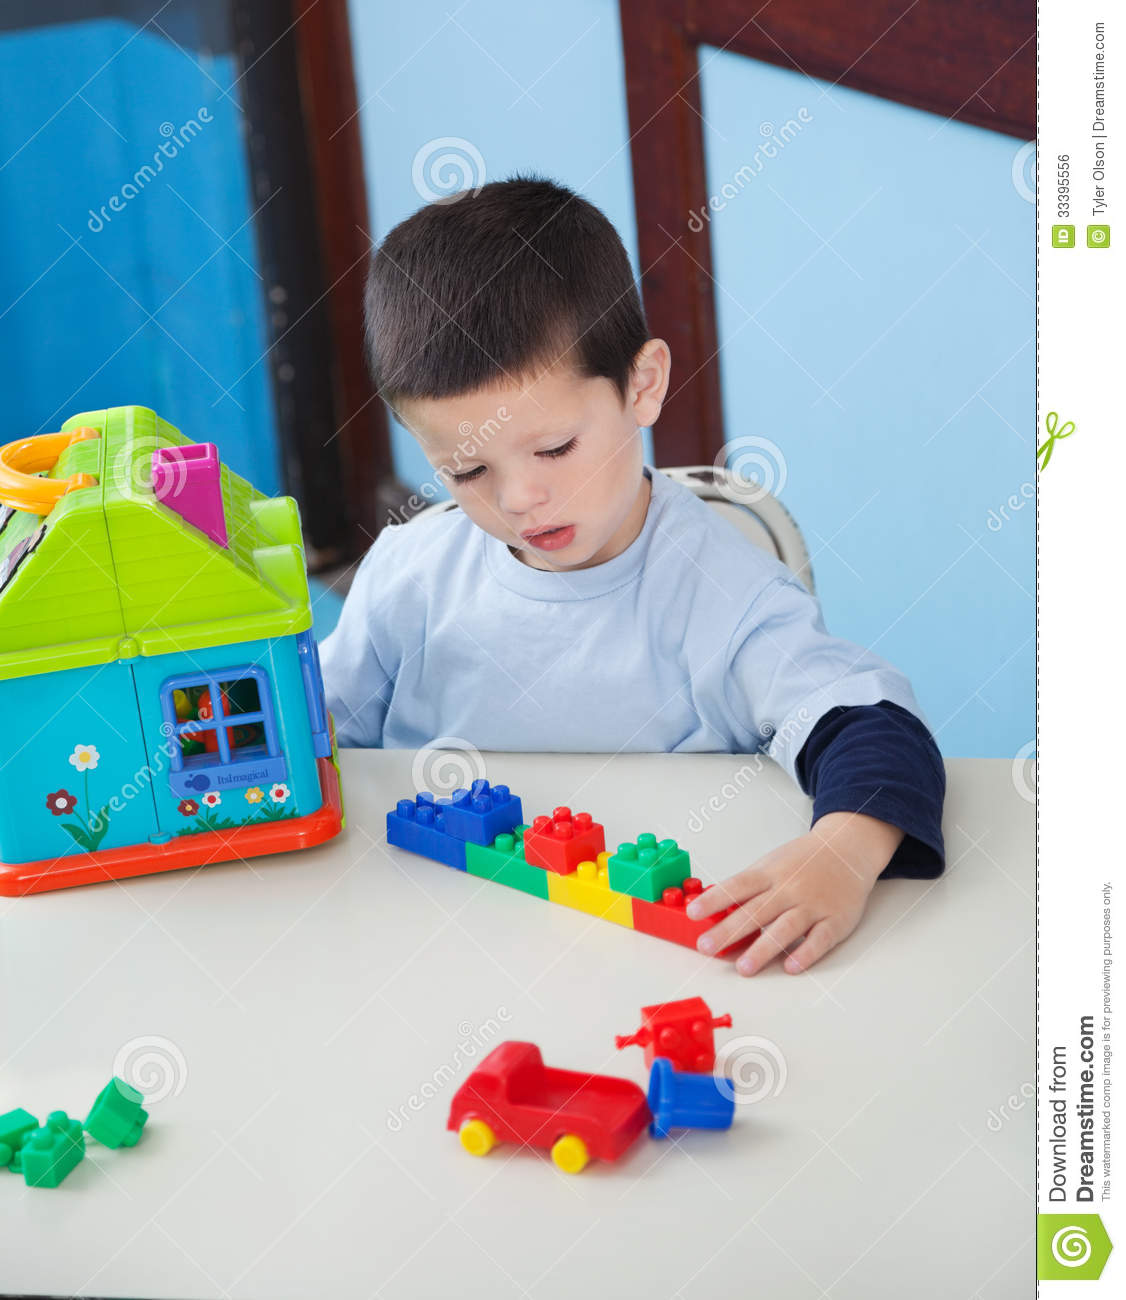 Toys For Boys Kindergarten : Boy playing with toys at desk in preschool royalty free